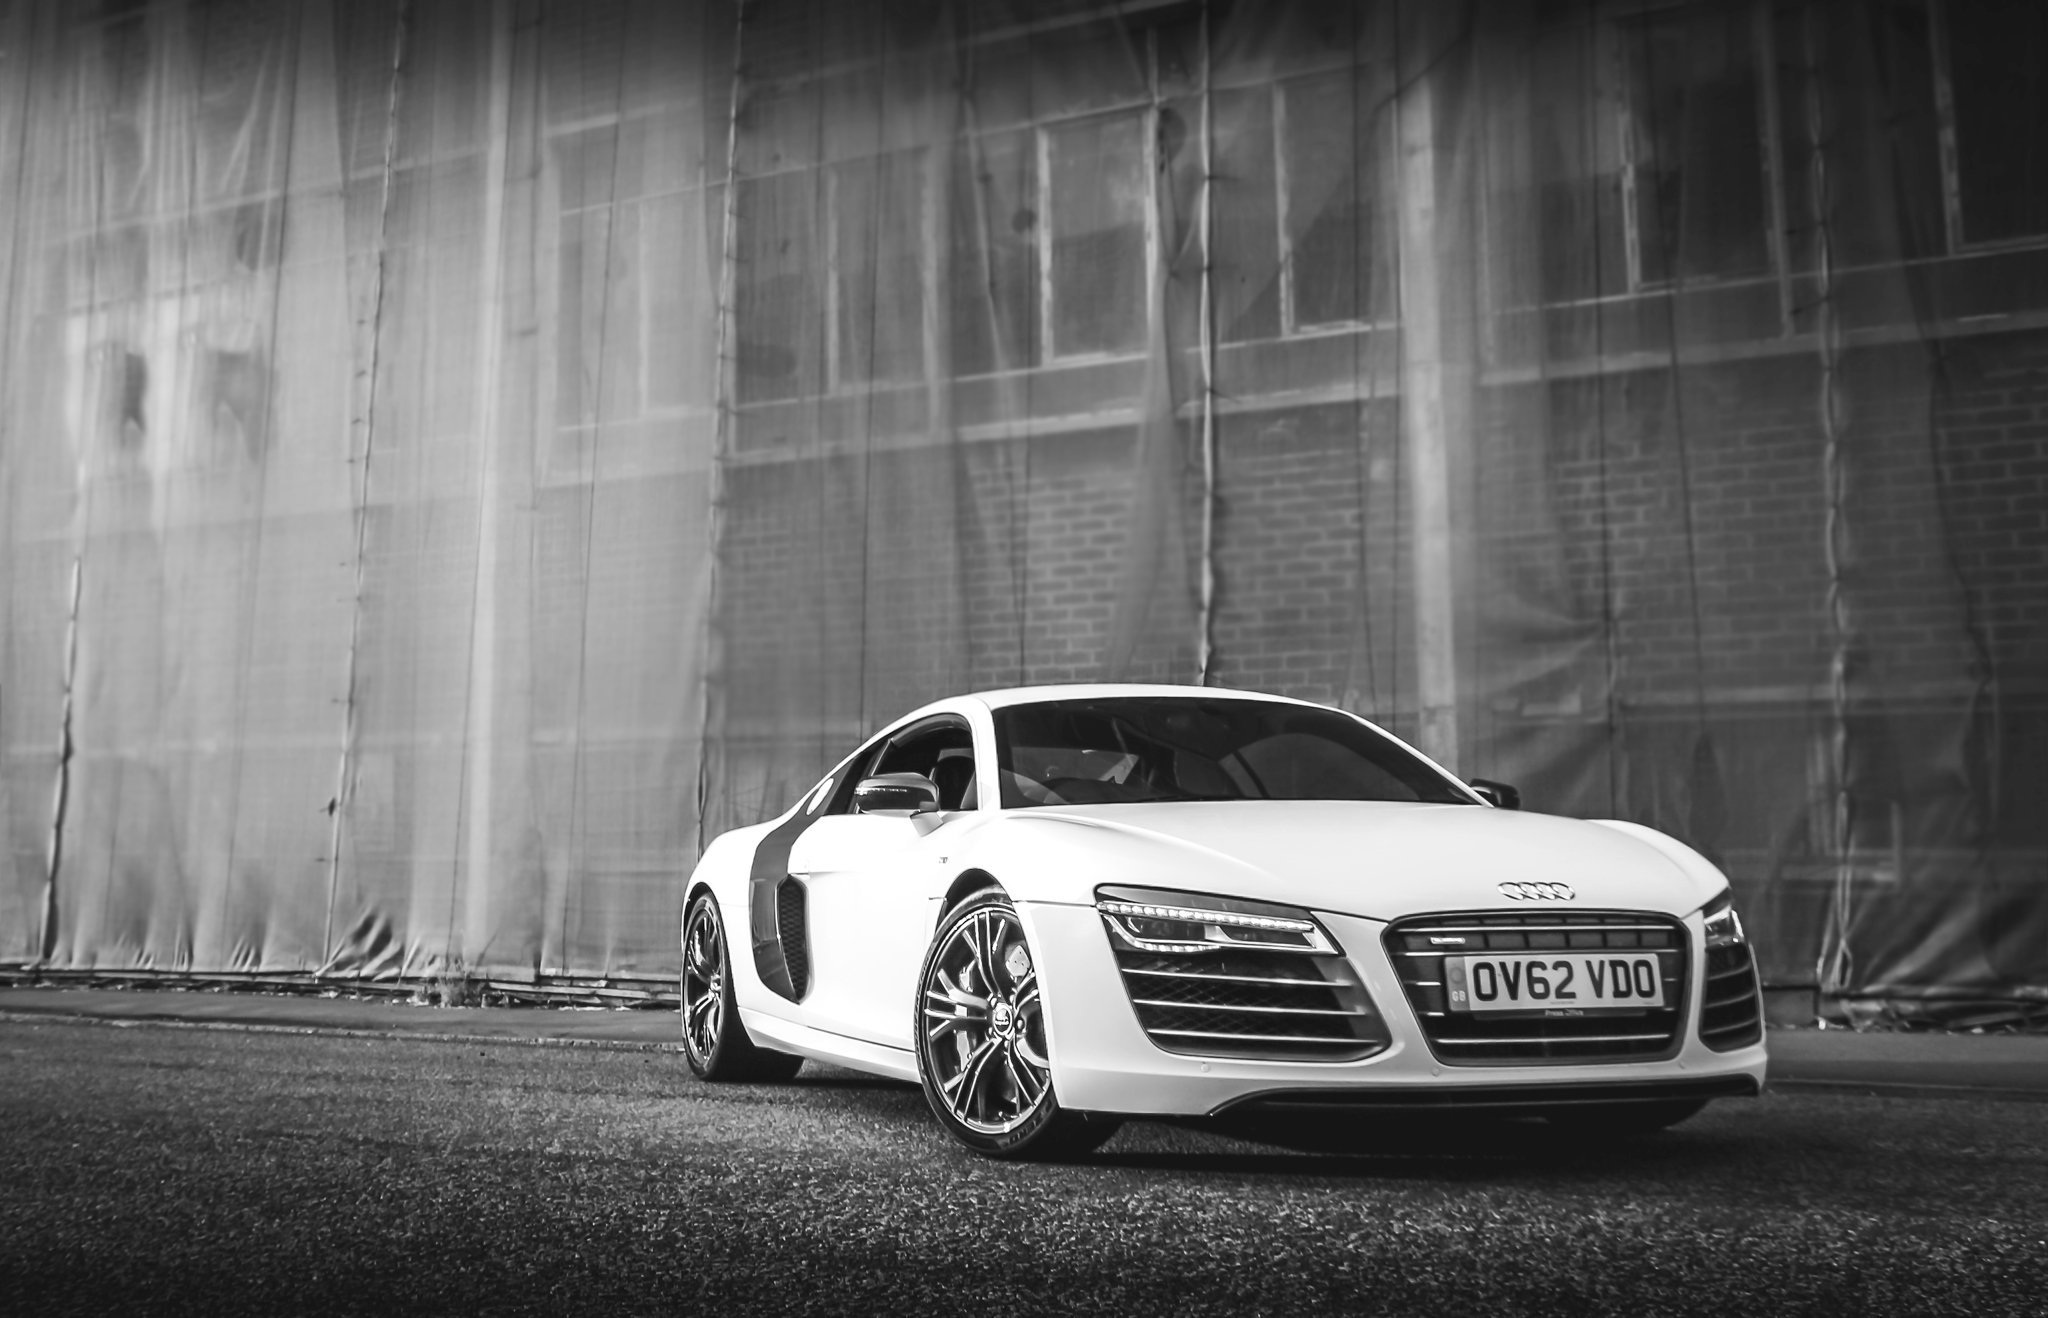 Audi R8 V10 Plus by Ross Jukes Photography